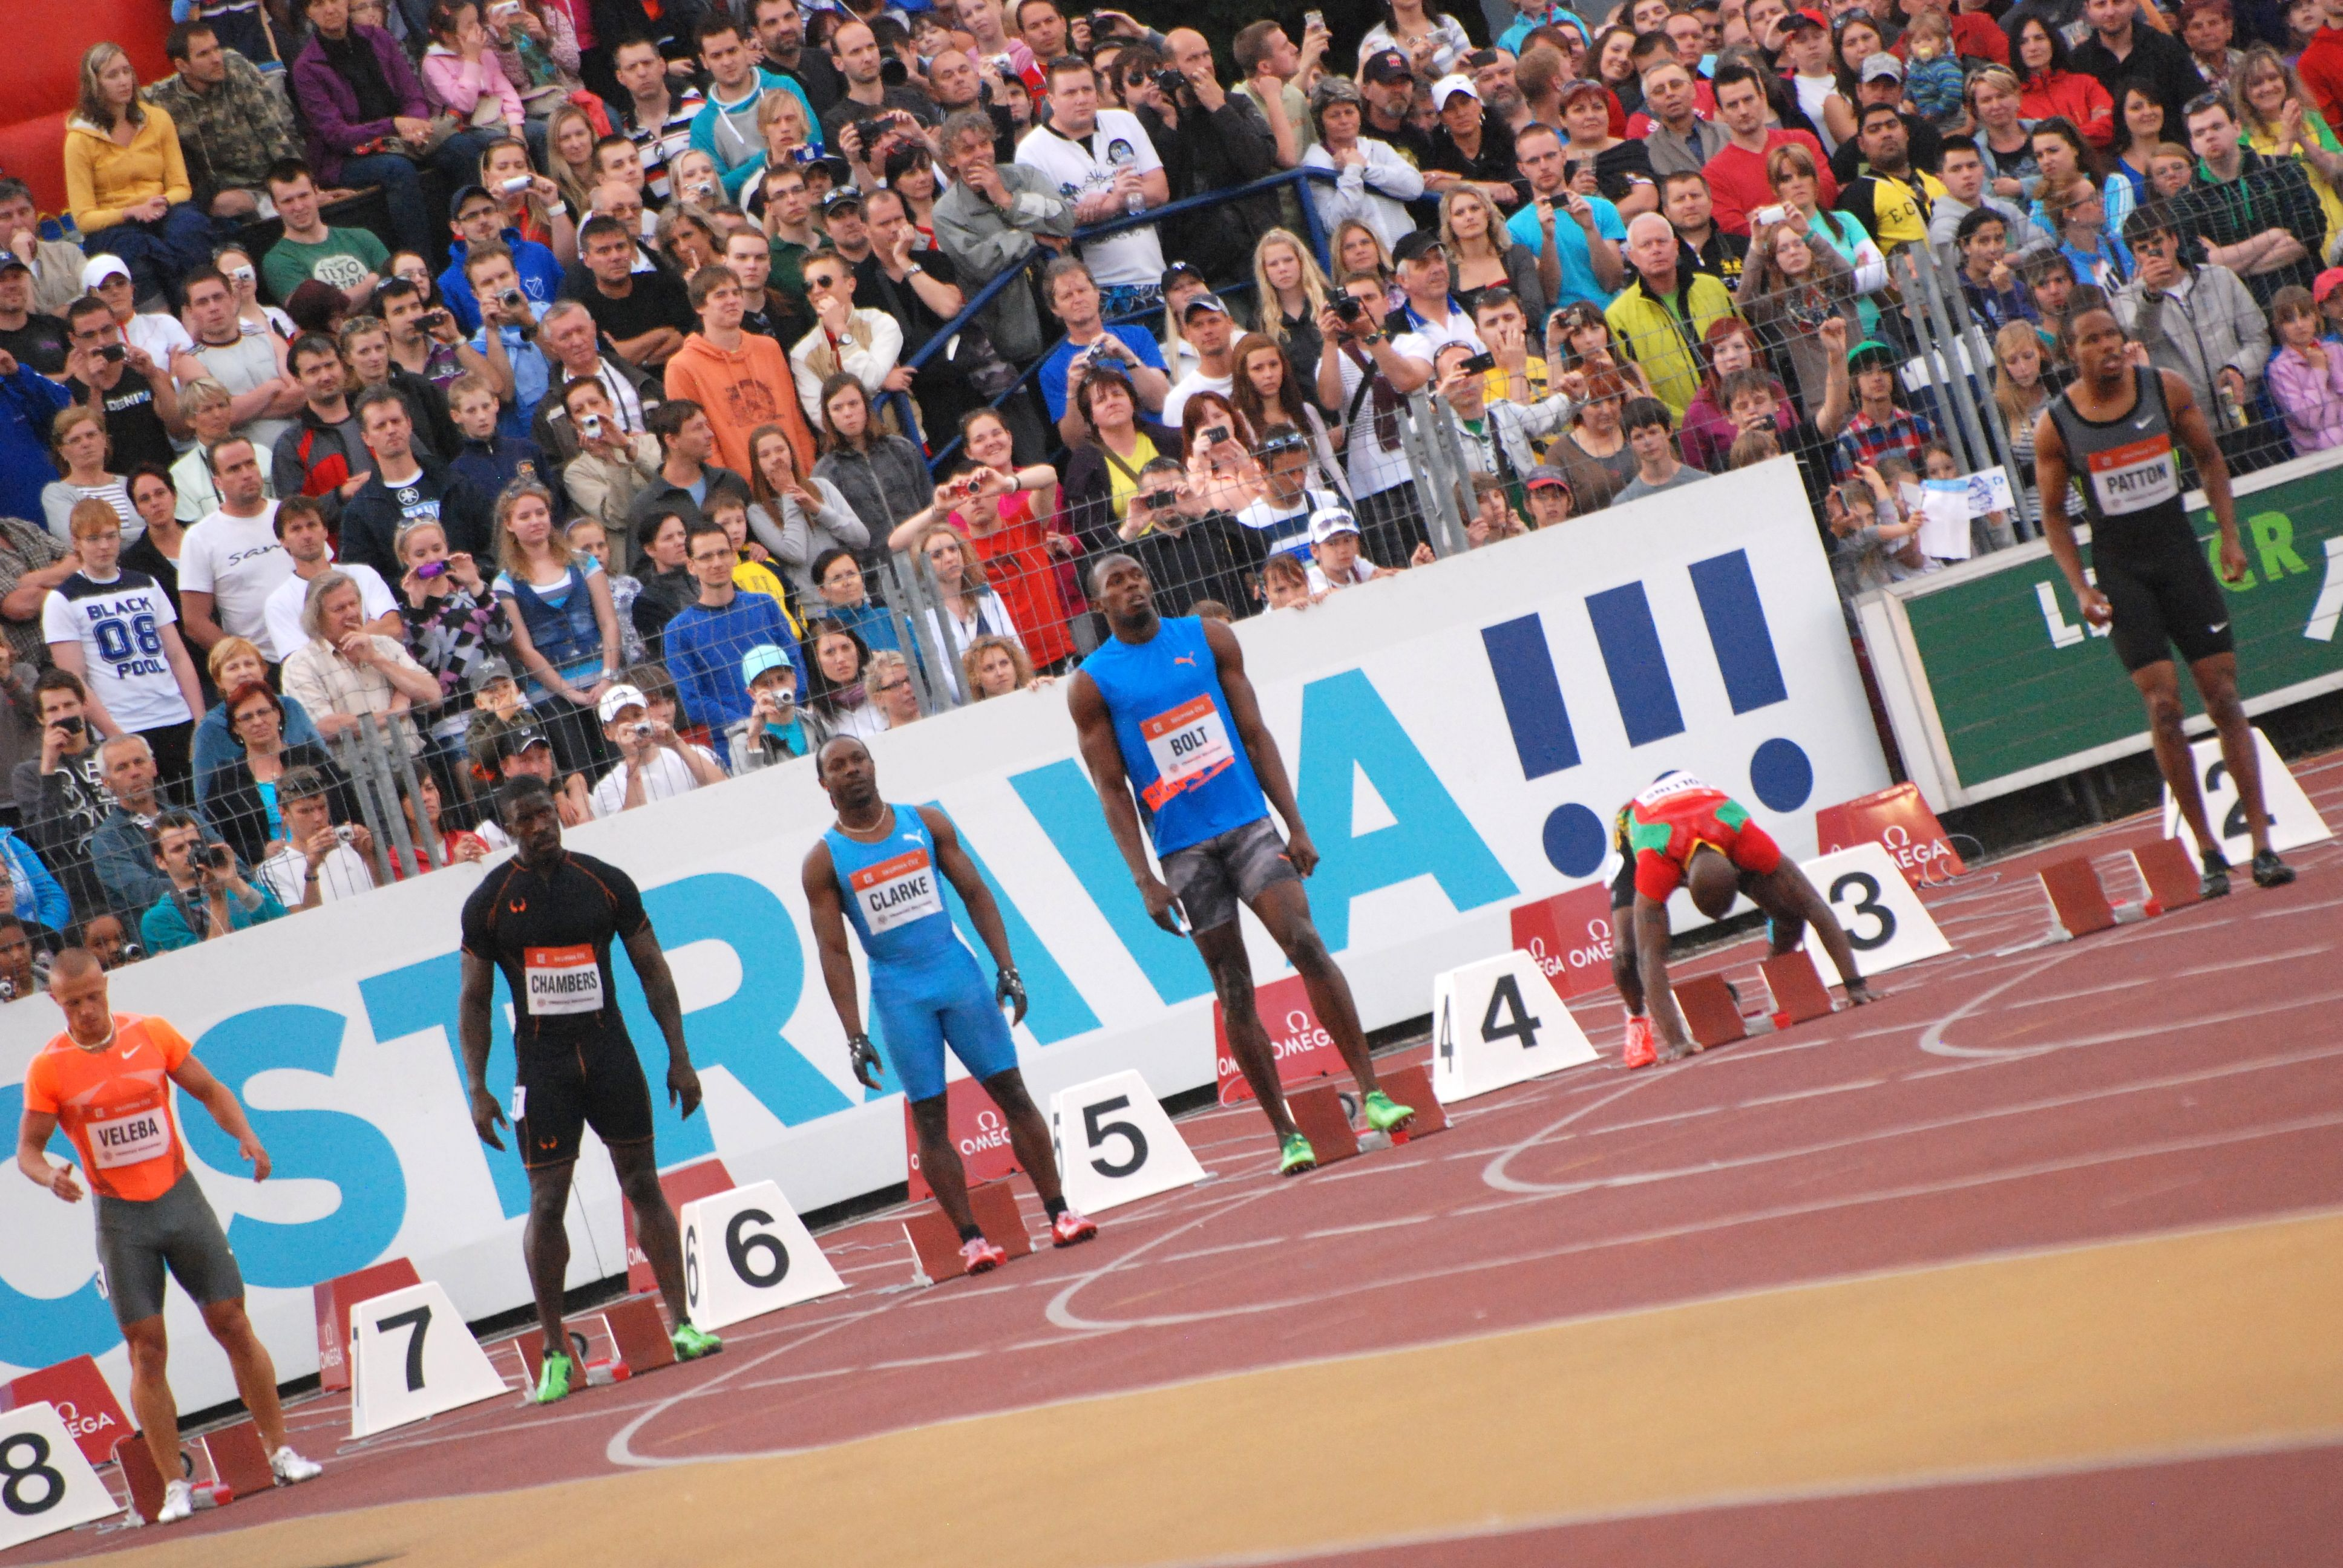 Usain will run the 4x100m relay in Ostrava